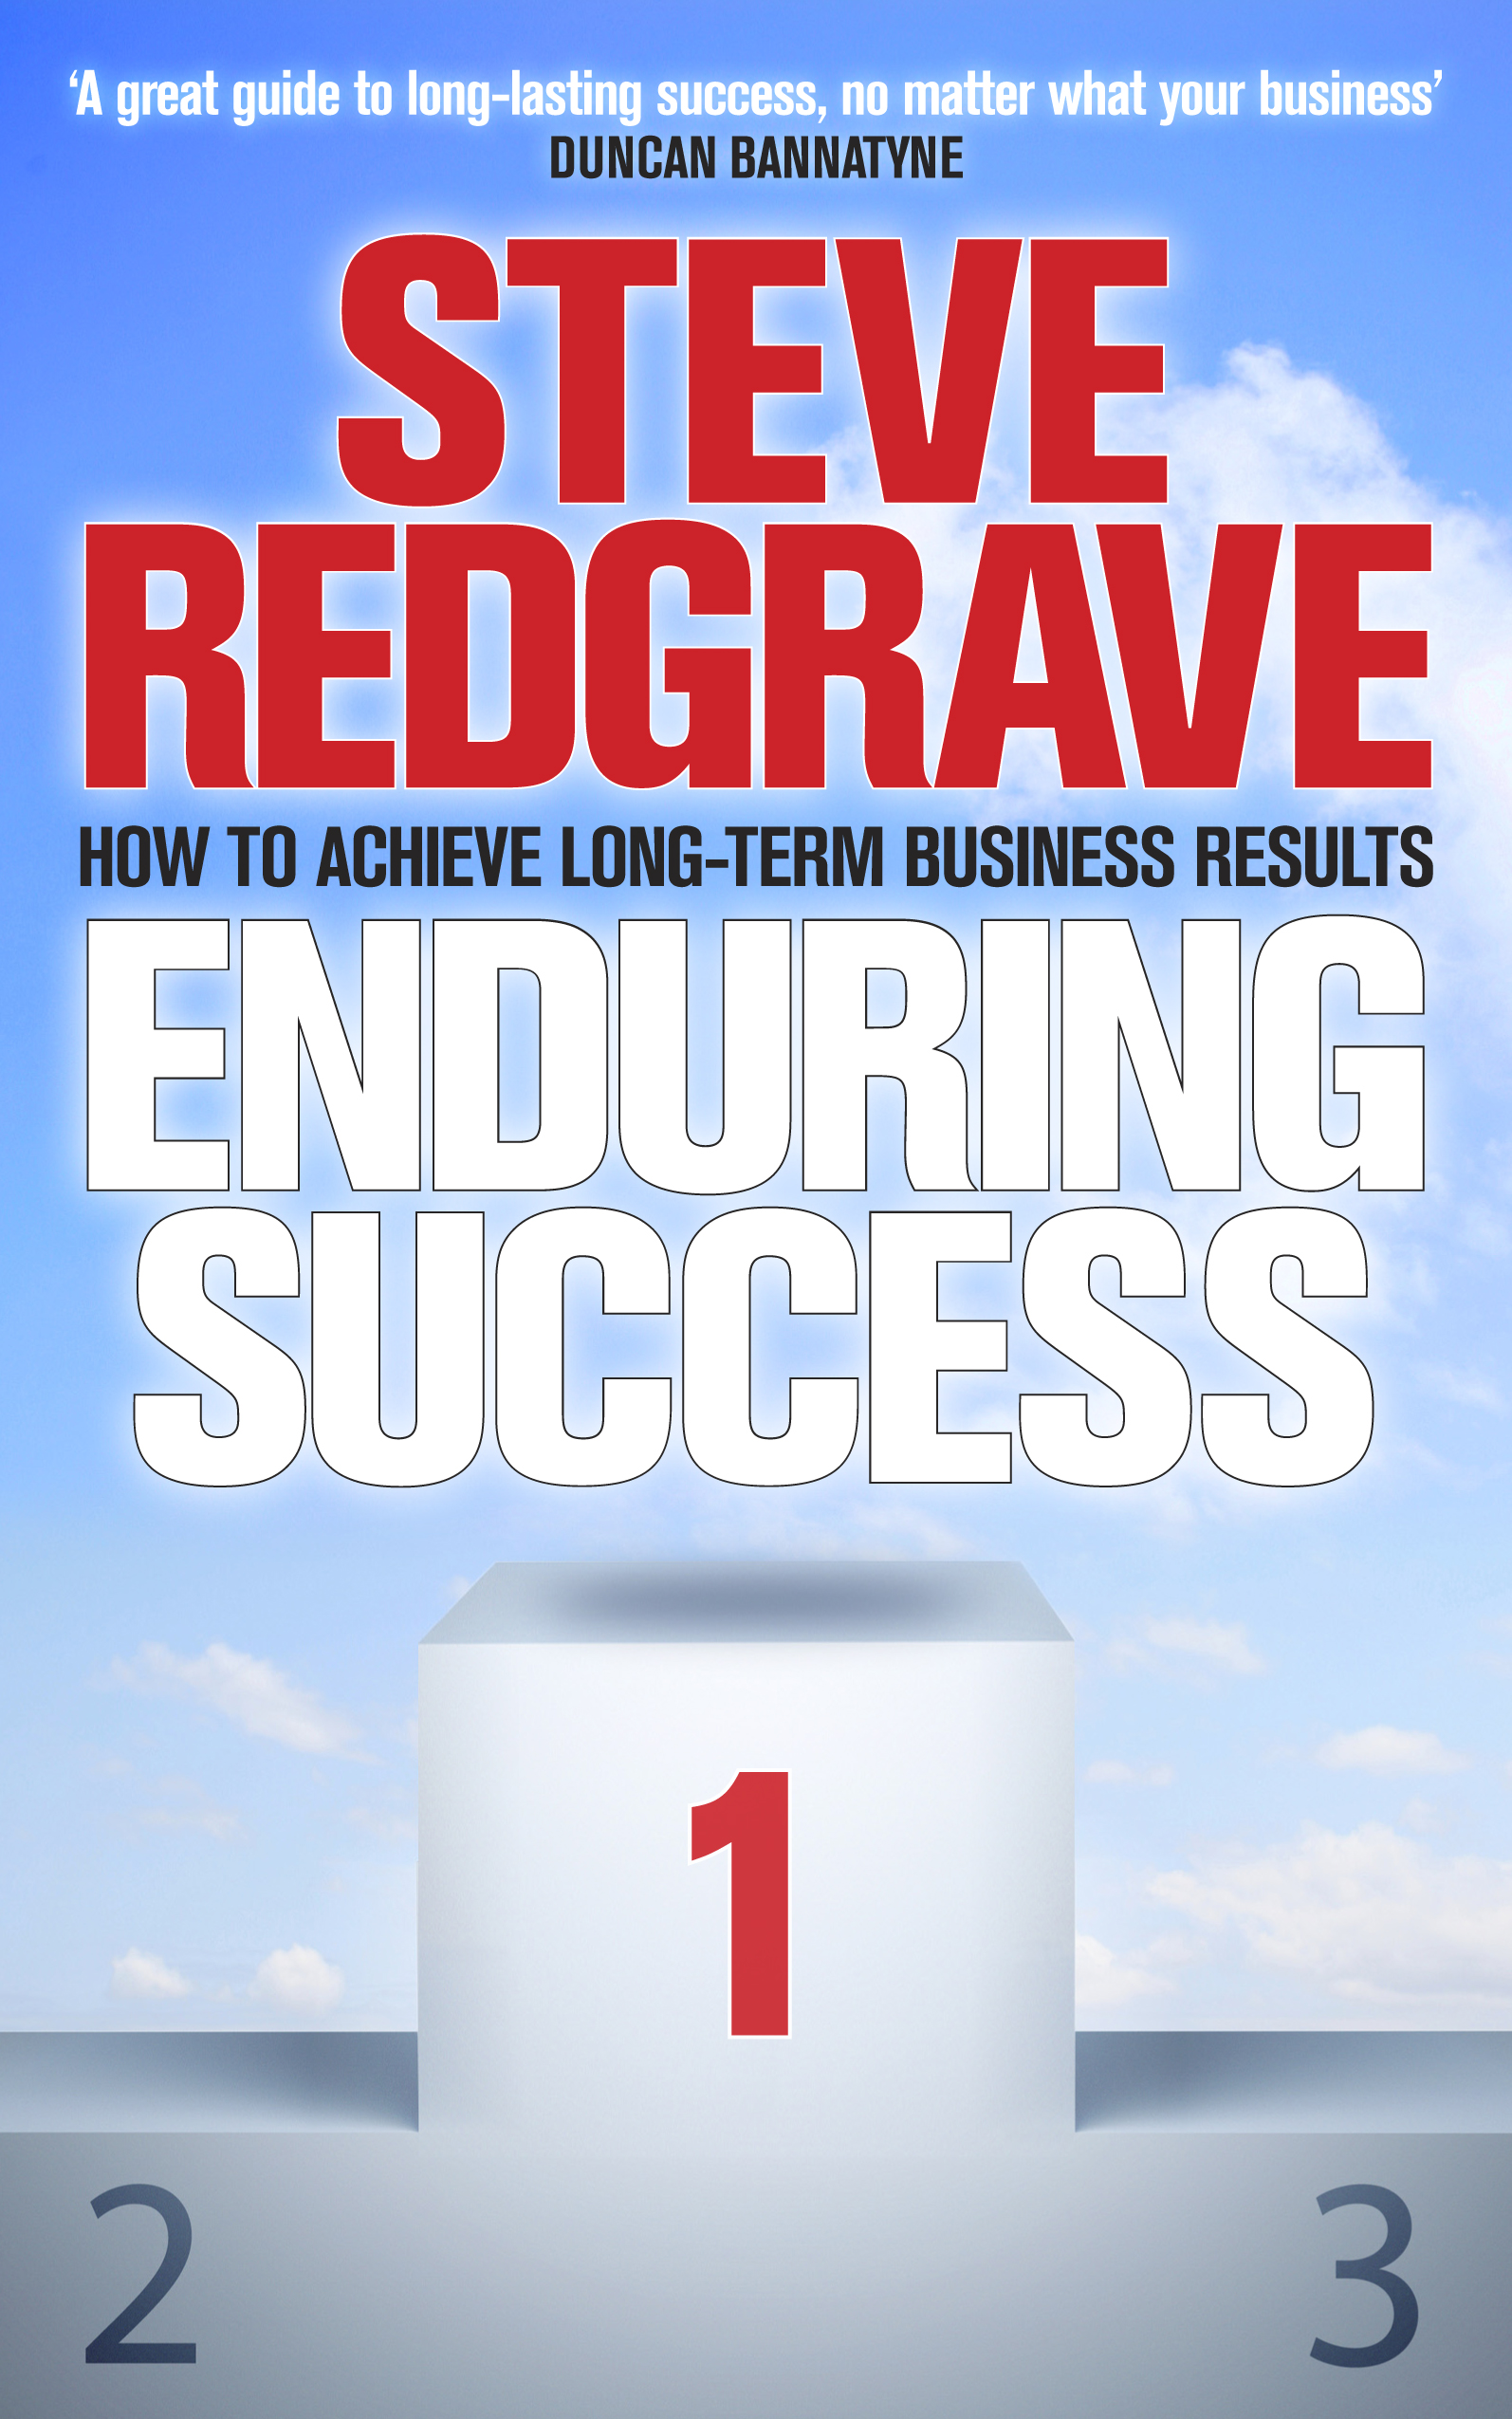 Enduring Success Lessons from business on long-term results and how to achieve them